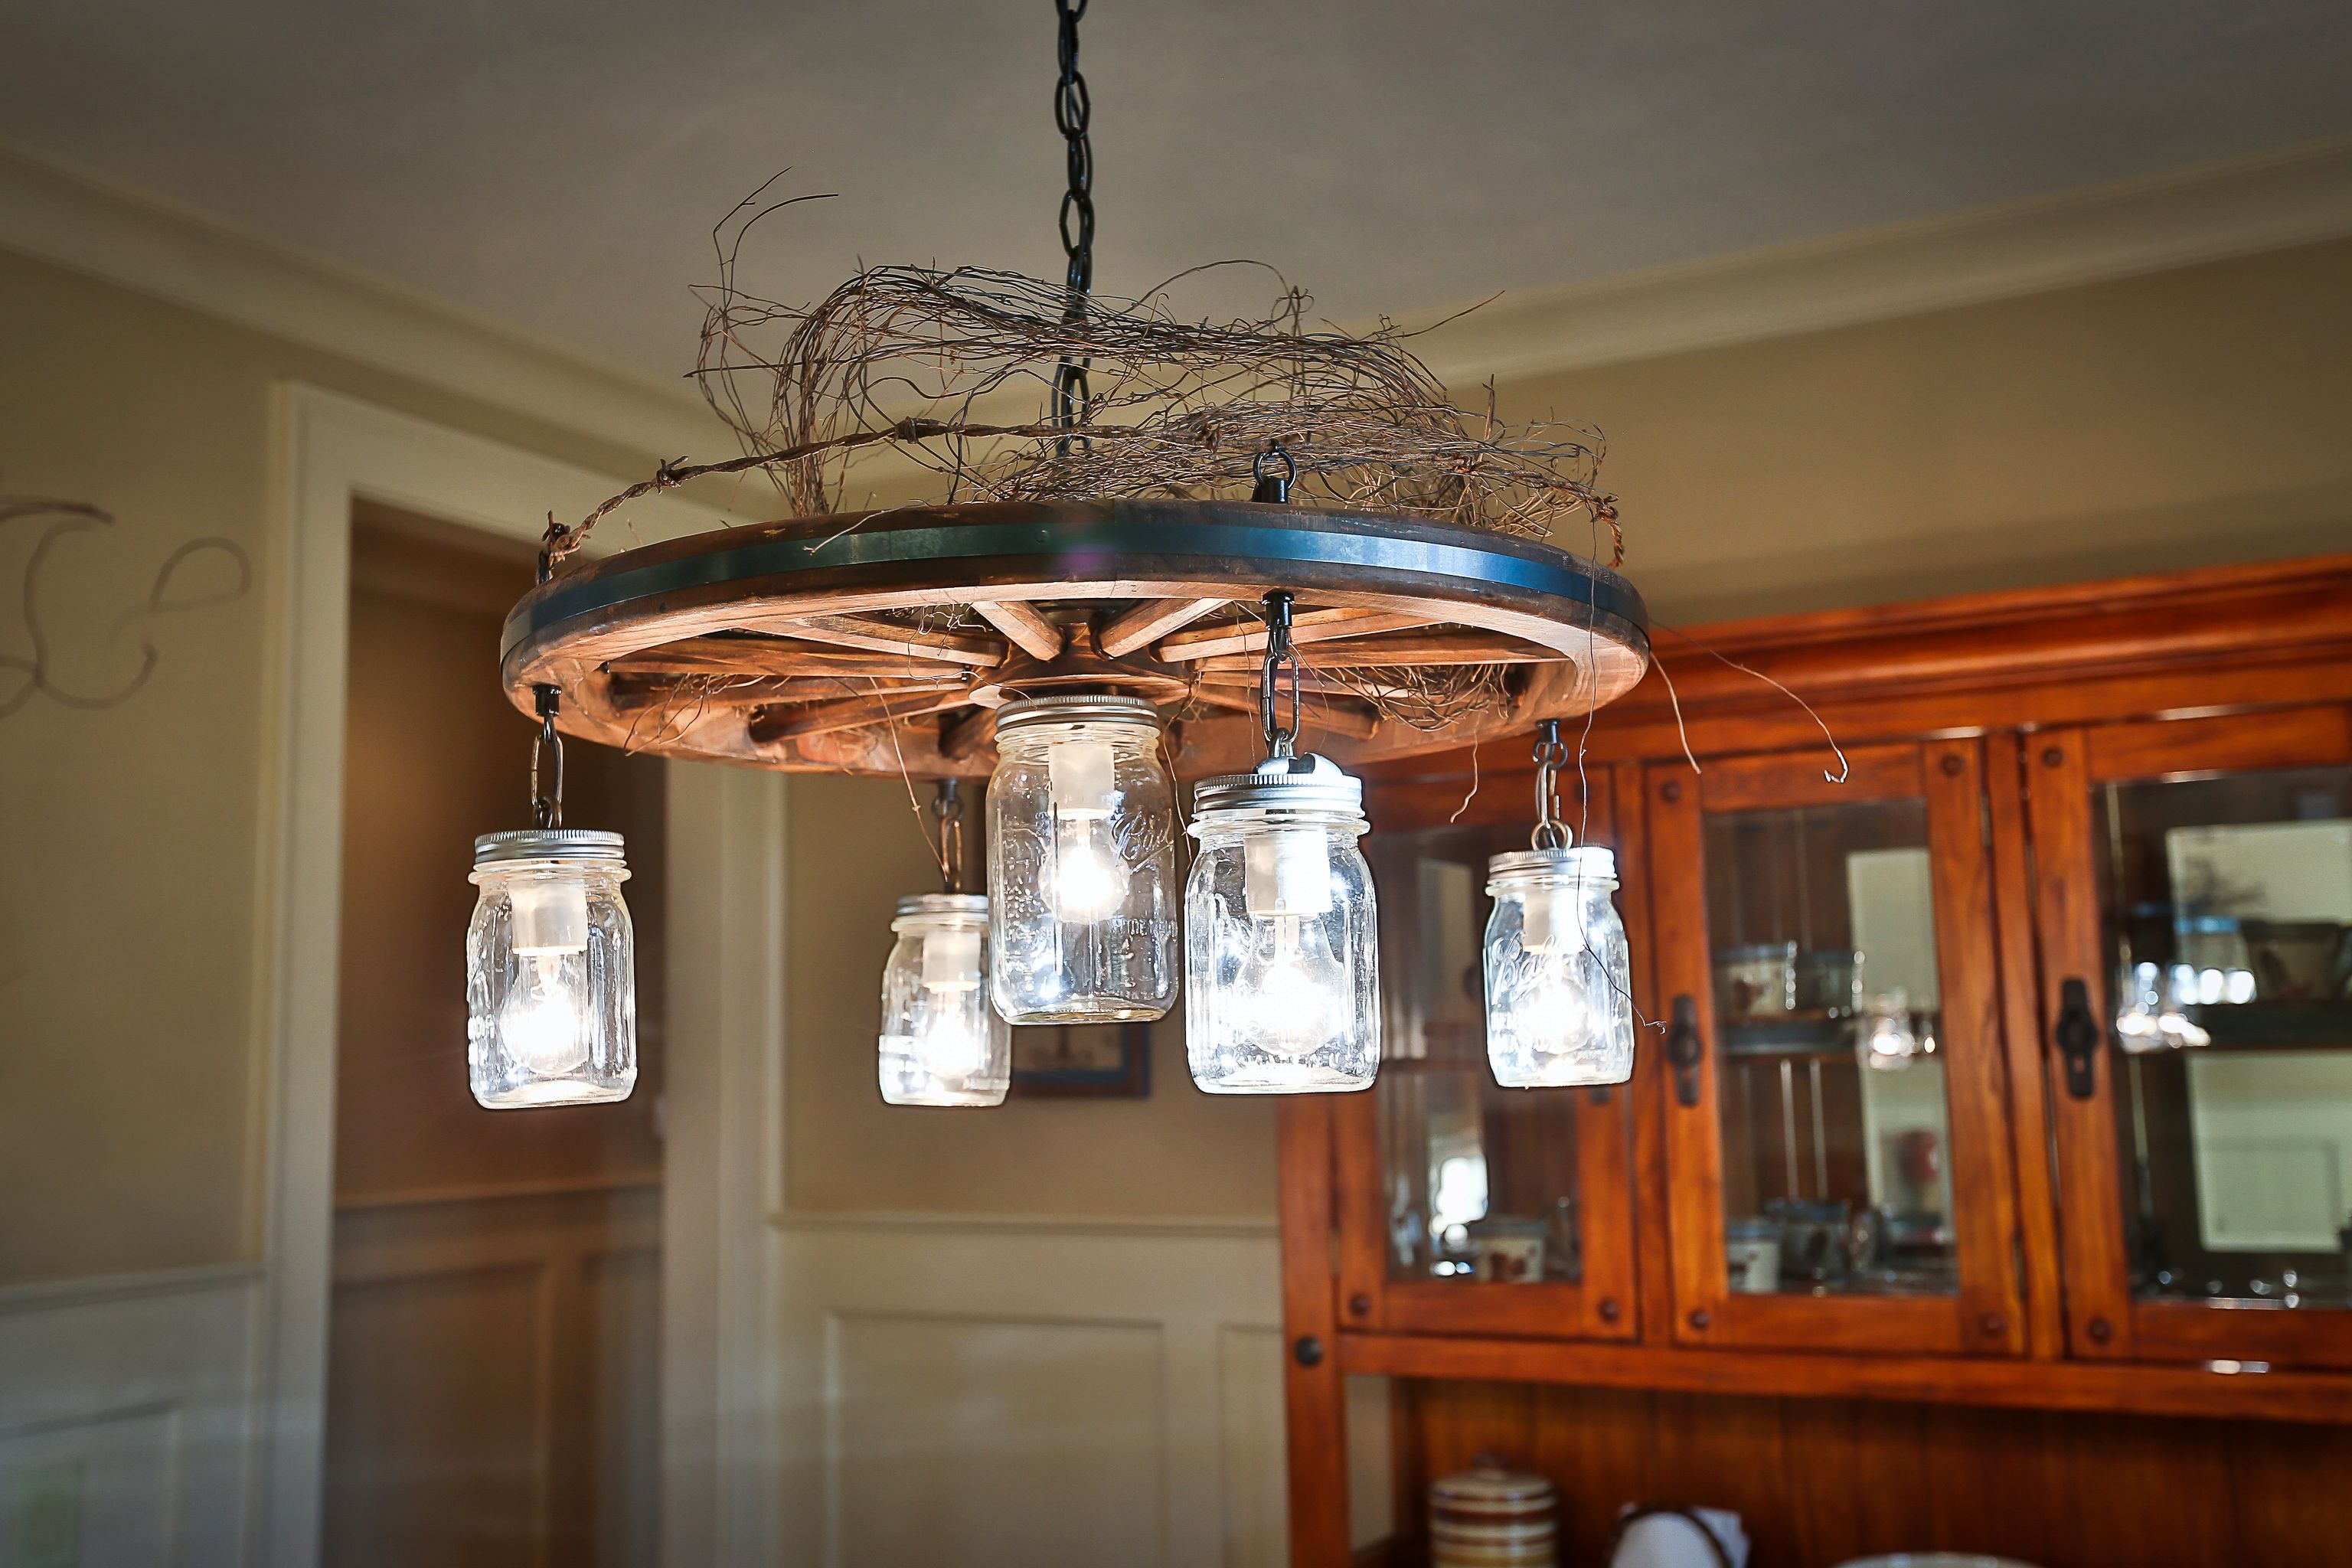 Southwestern Dining Room Light Fixture Unique Antique Wheel Turned Chandelier See More On Our Dining Room Light Fixtures Dining Room Lighting Light Fixtures